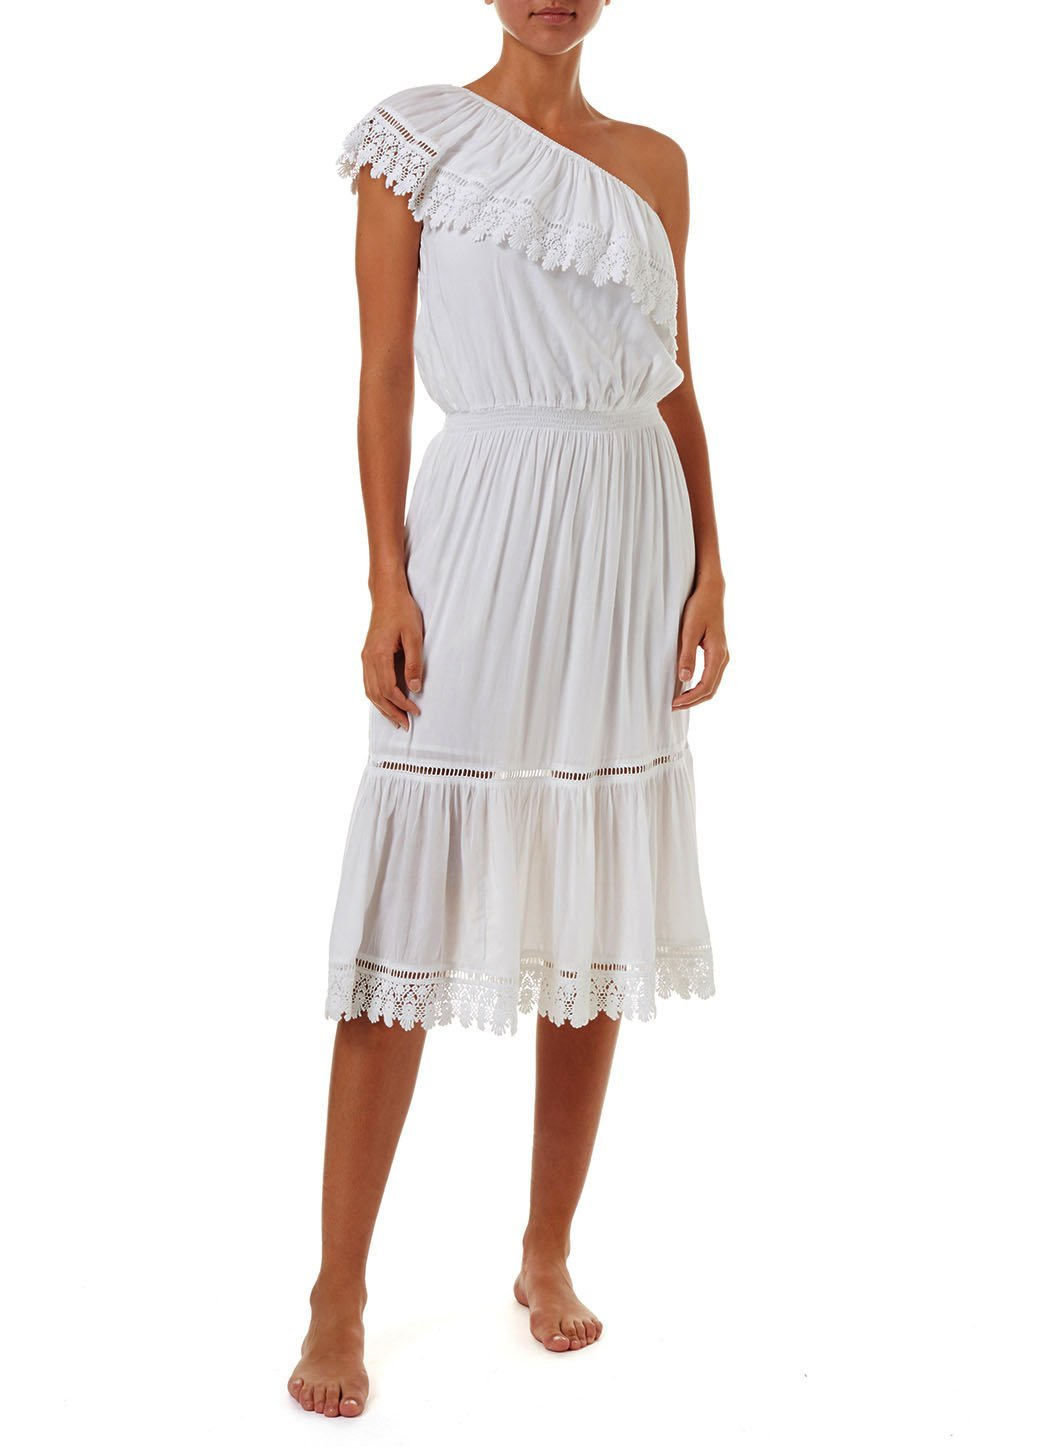 jo white oneshoulder embroidered frill midi dress 201 F